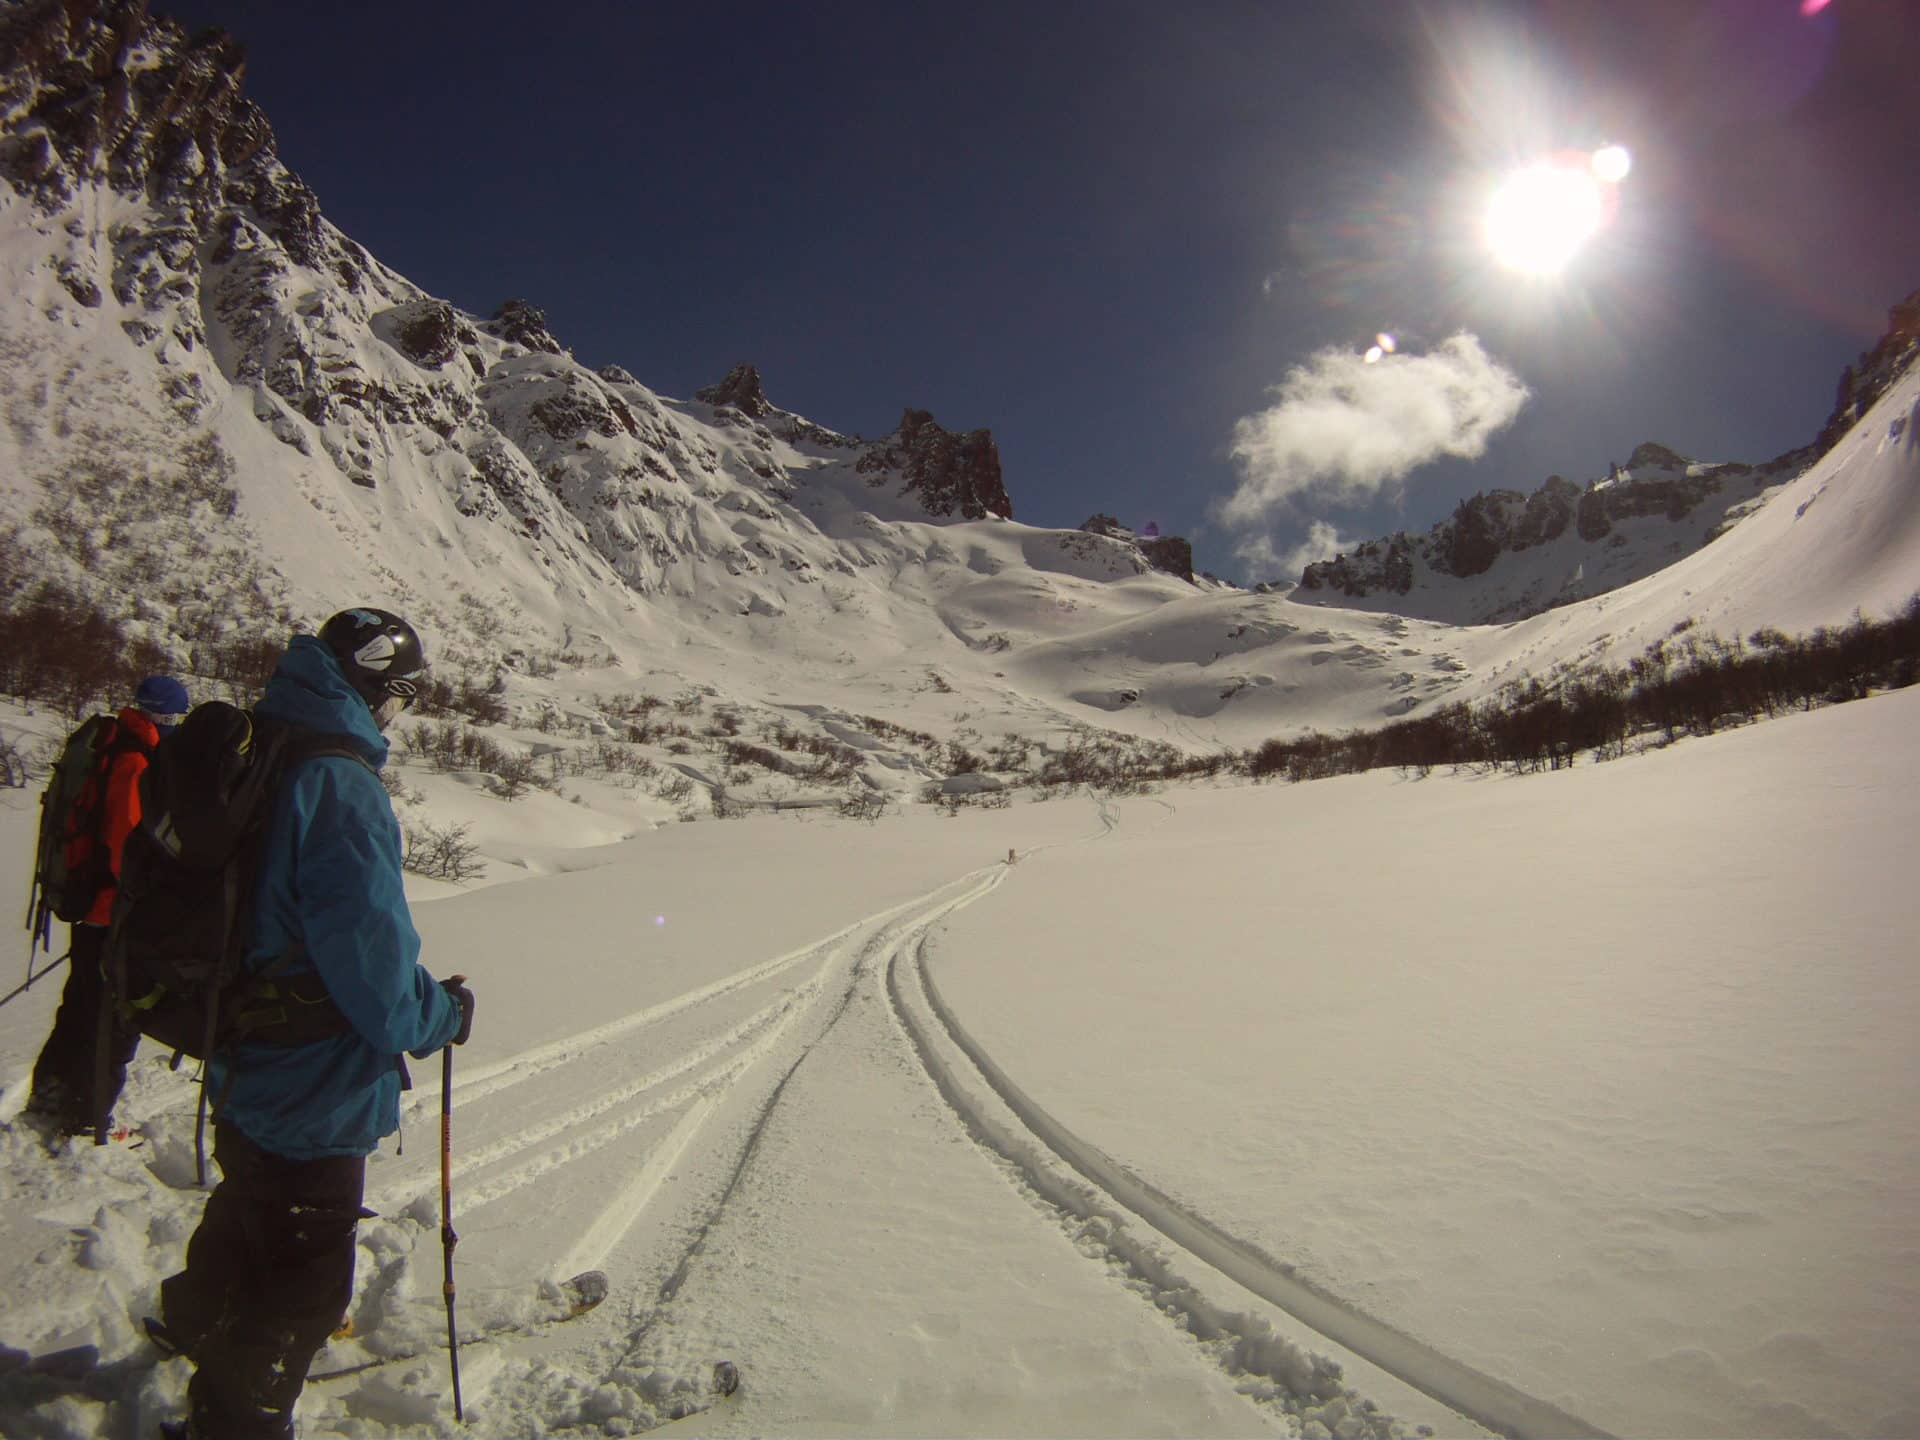 Backcountry skiing week in Patagonia with a guide